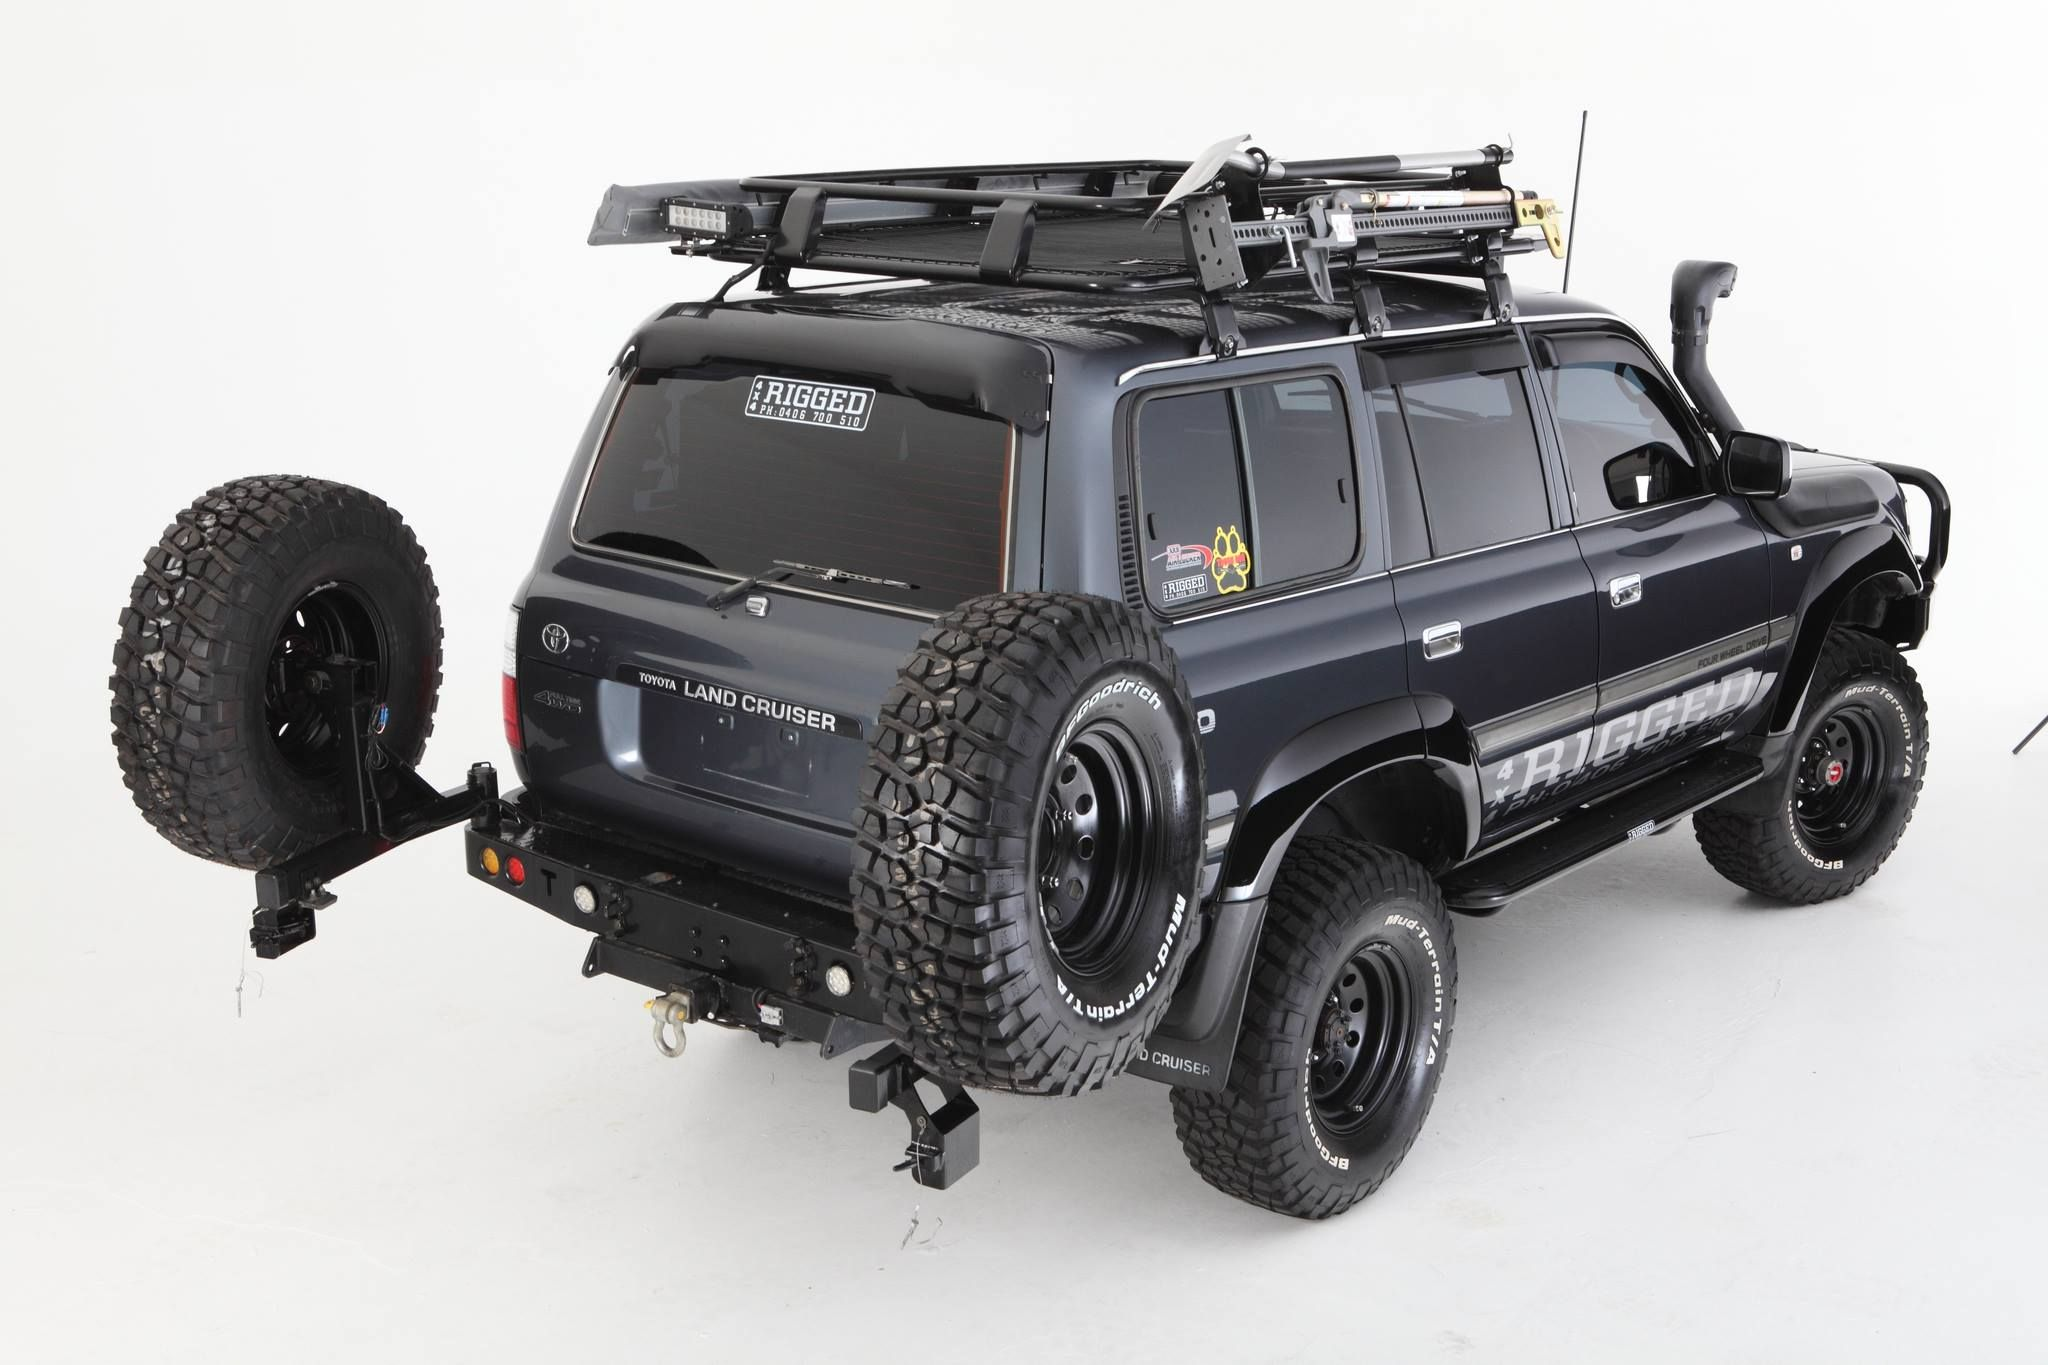 Toyota Hdj 80 Off Road 4x4 Travel Overland And